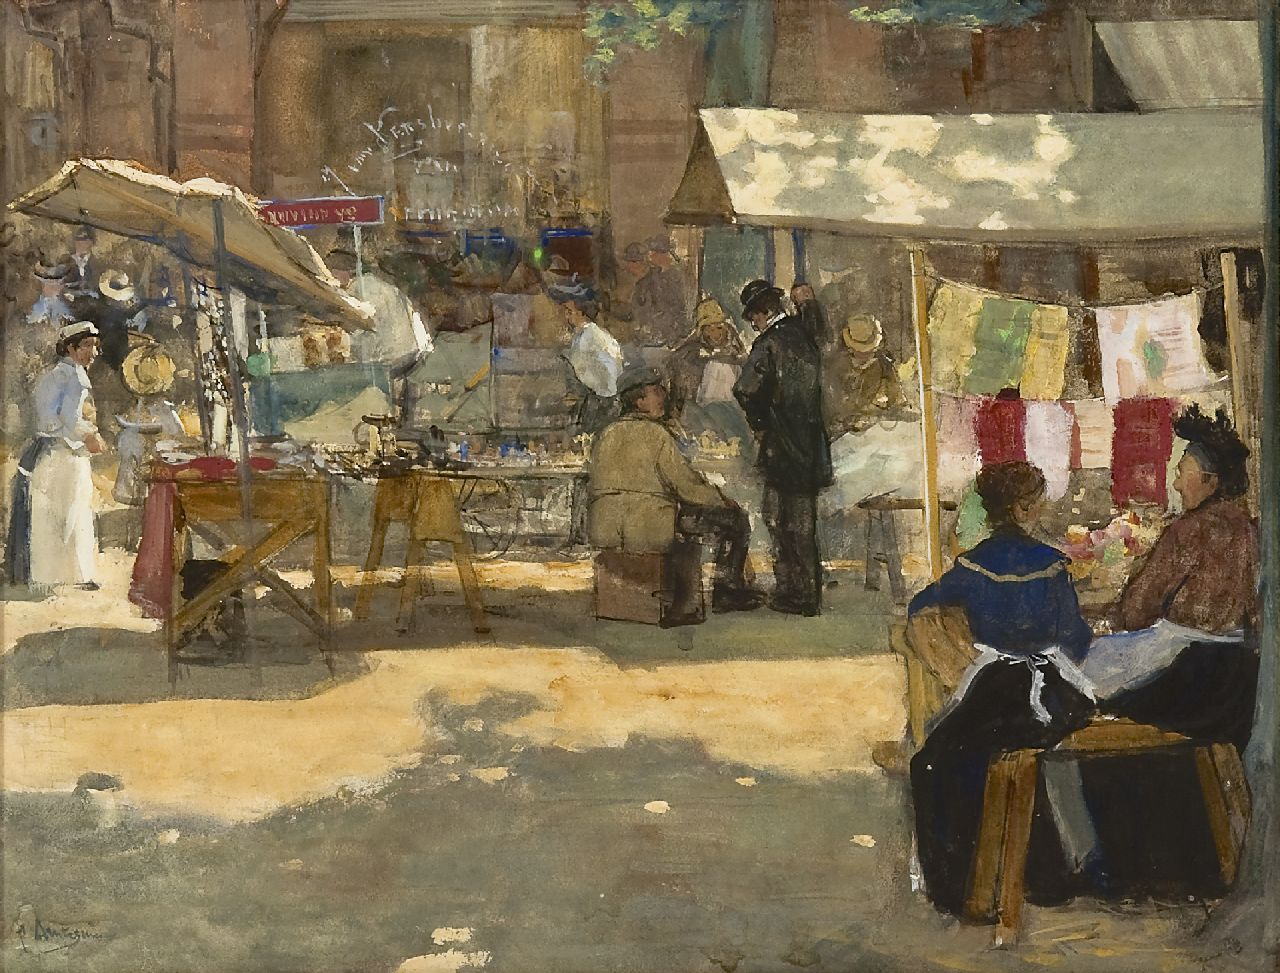 Arntzenius P.F.N.J.  | Pieter Florentius Nicolaas Jacobus 'Floris' Arntzenius, A sunny market scene, The Hague, watercolour on paper 36.2 x 46.9 cm, signed l.l. and painted ca. 1905